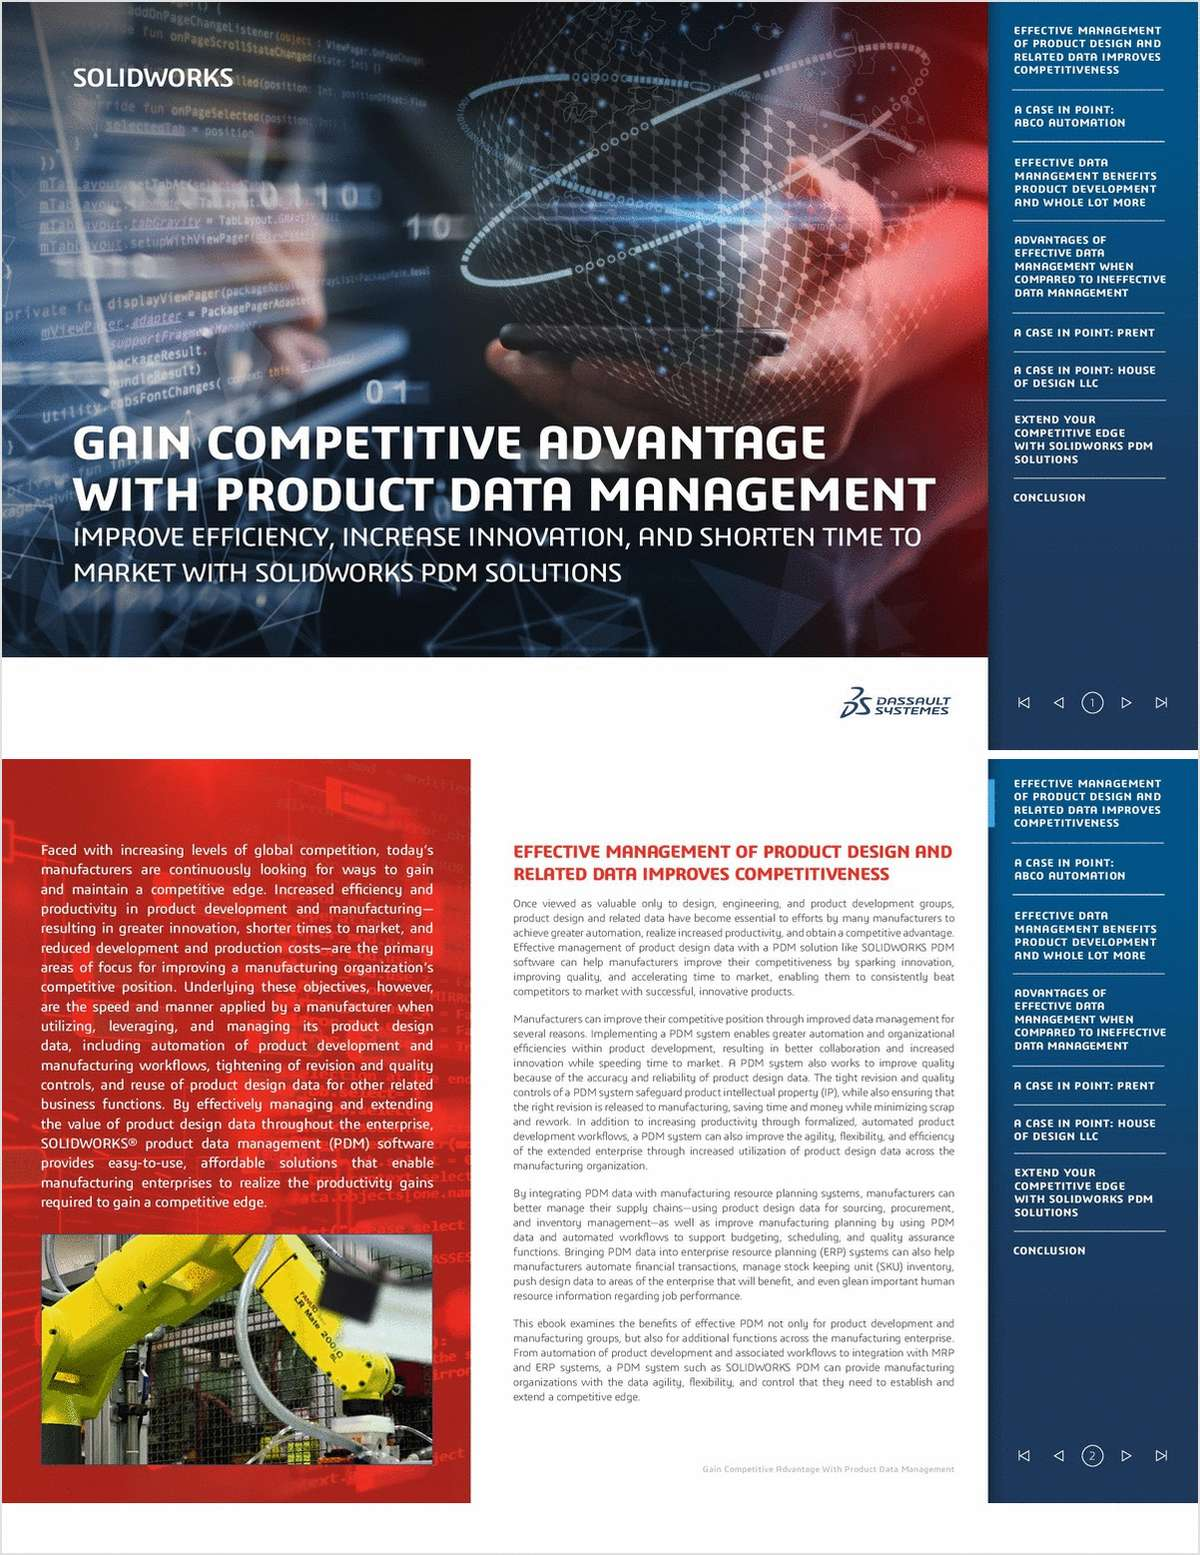 Gain Competitive Advantage with Product Data Management: Improve Efficiency, Increase Innovation, and Shorten Time to Market with SOLIDWORKS PDM Solutions